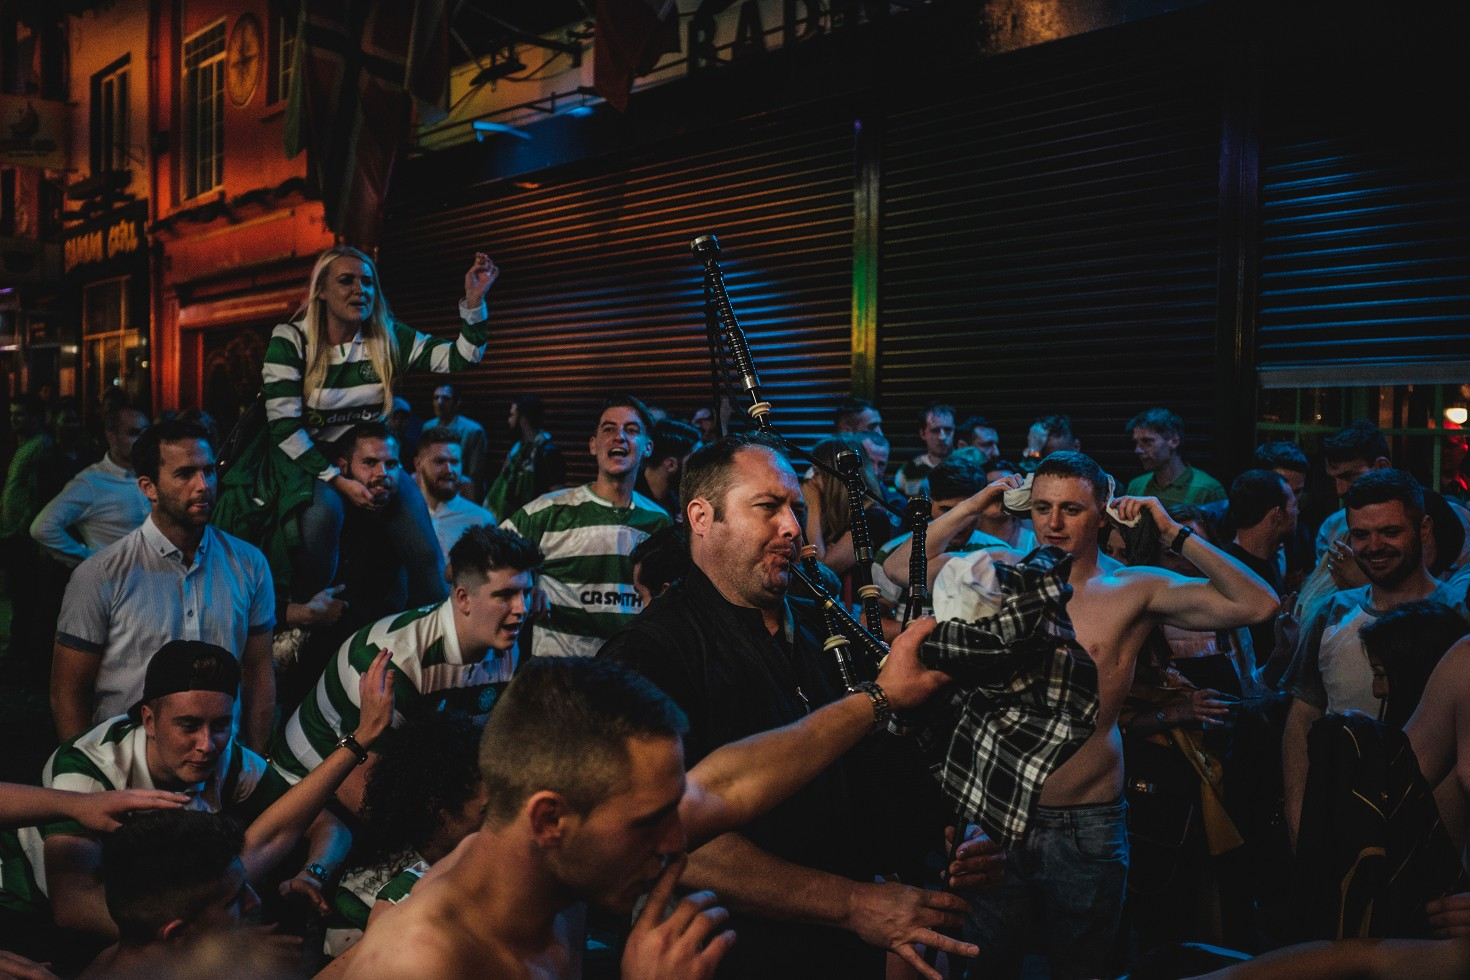 Celtic-Barca-Barcelona-Dublin-Temple-Bar-Aviva-Ireland-Fans (58 von 68)